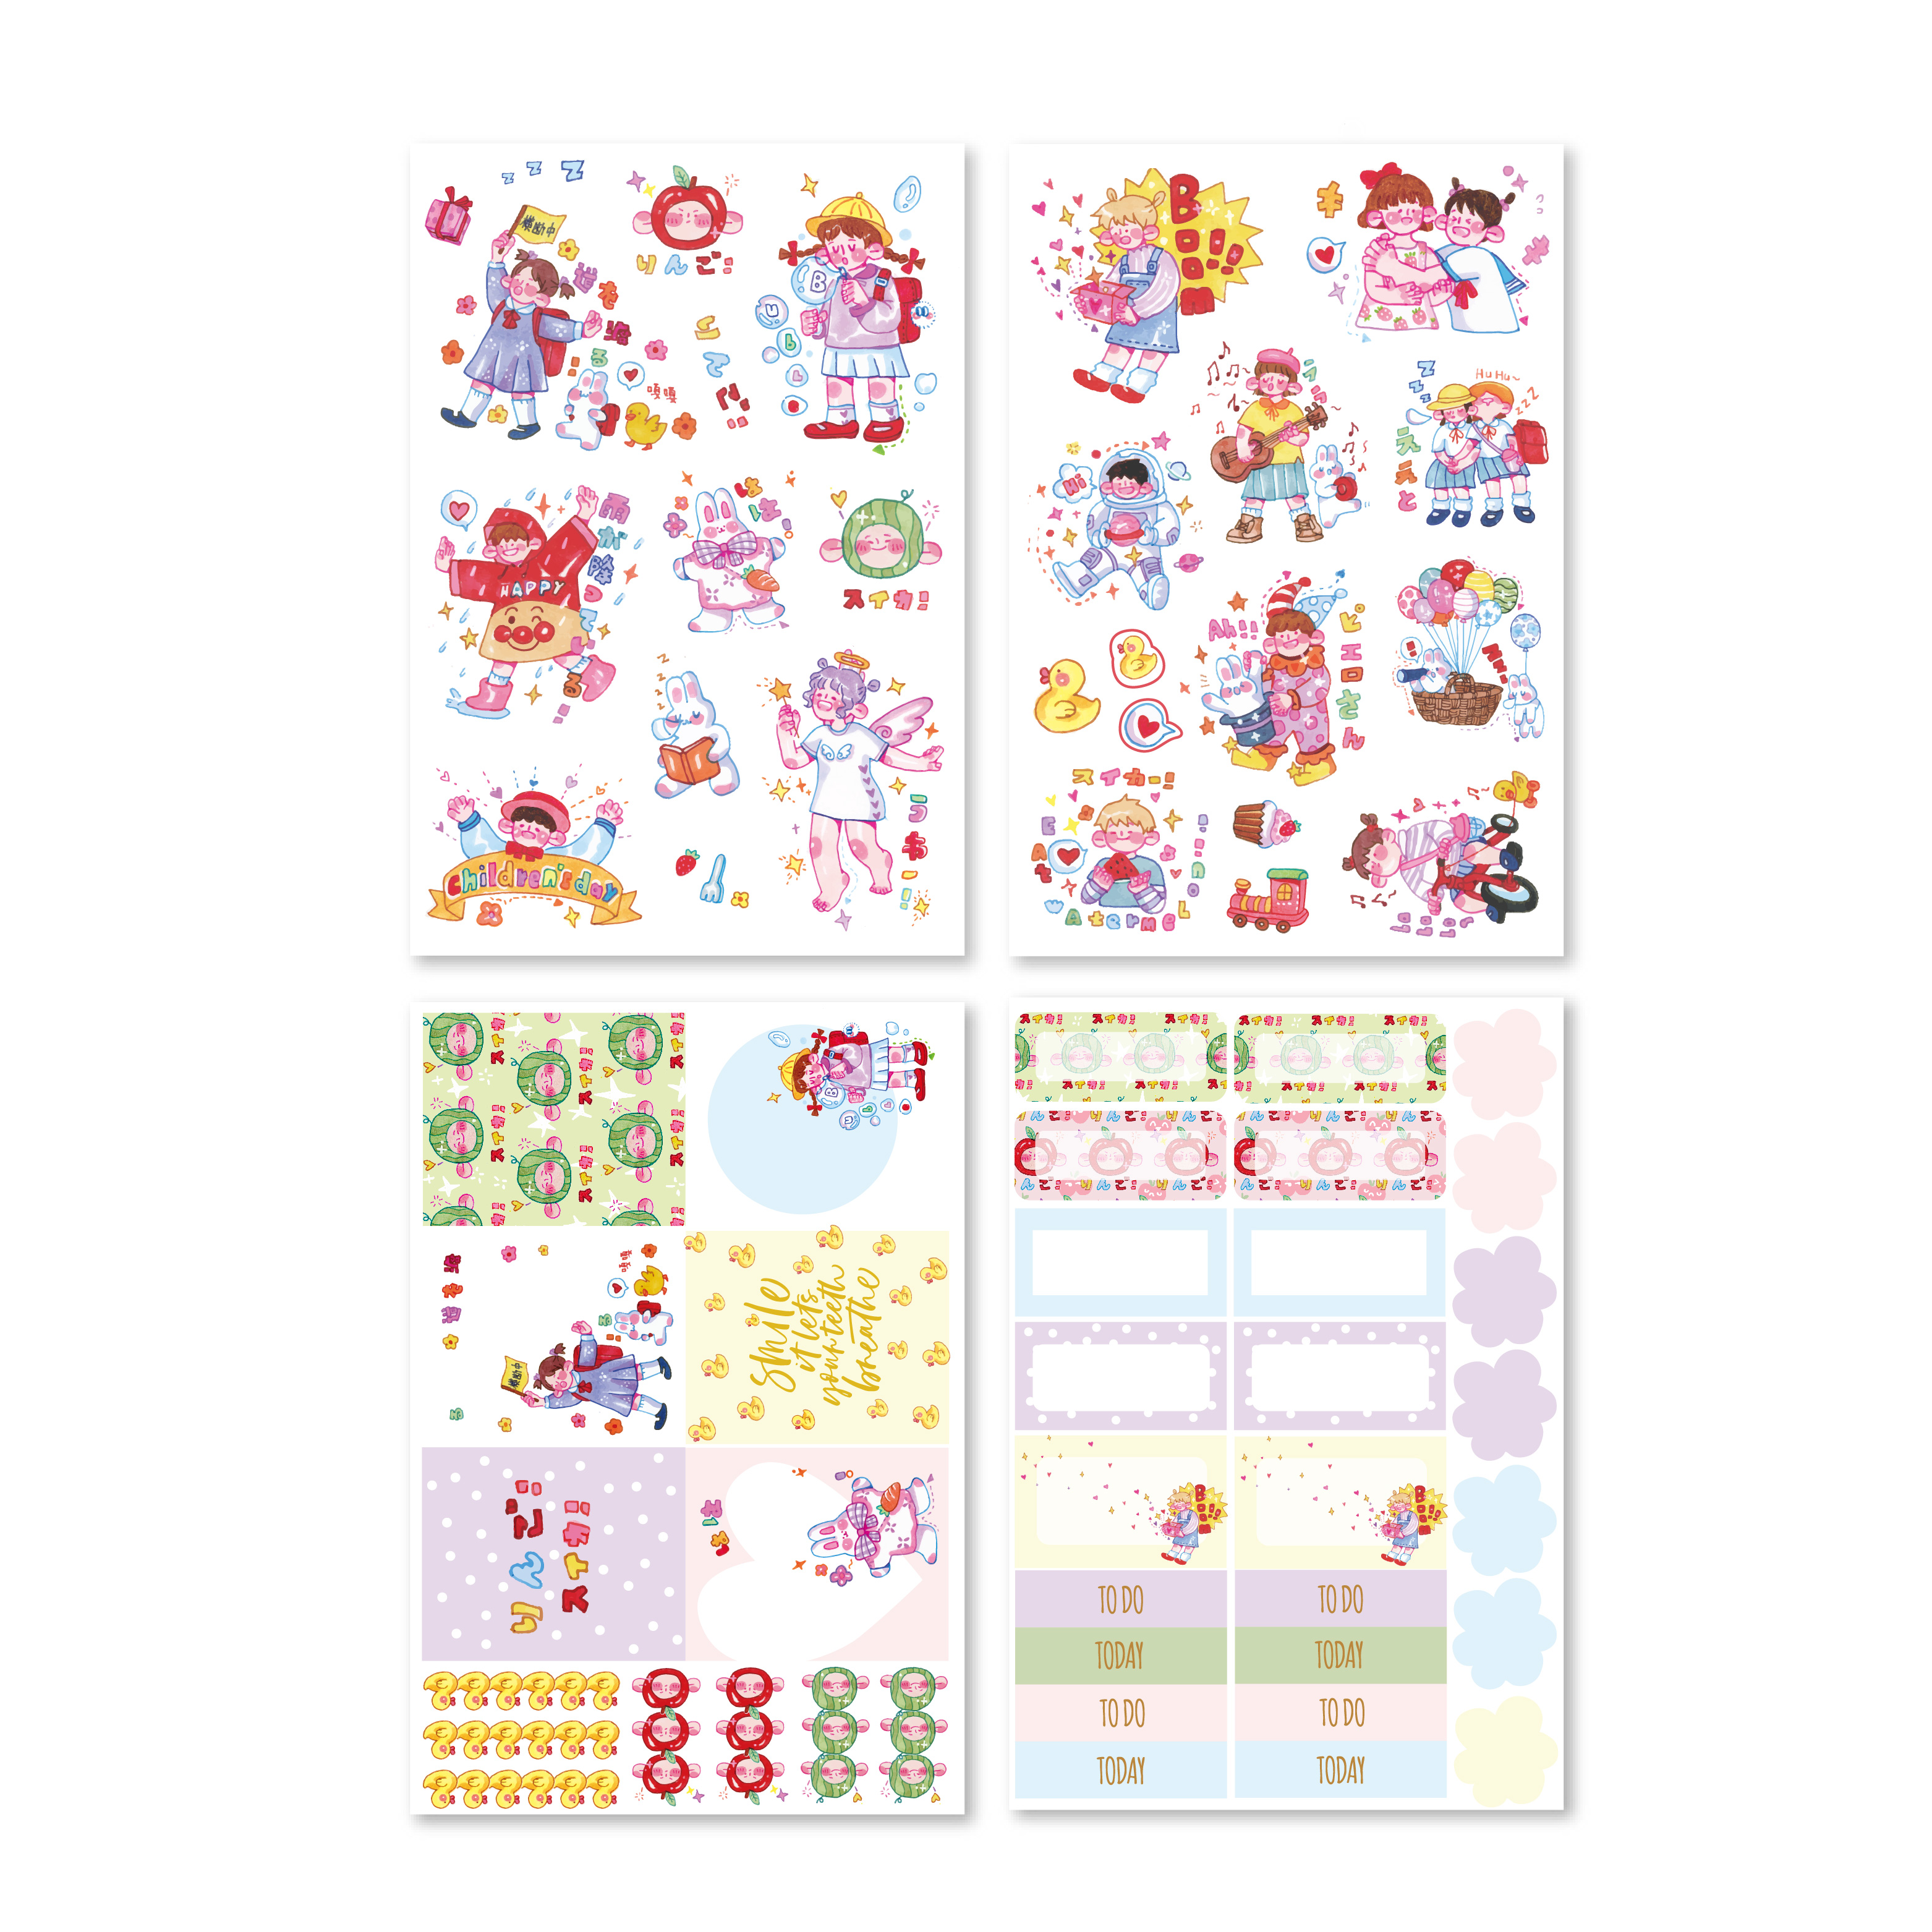 Midodo 4 Sheets/bag Childhood Series Self- adhesive Planner Paper Stickers Scrapbooking Diary Decor DIY Card Crafts(China)